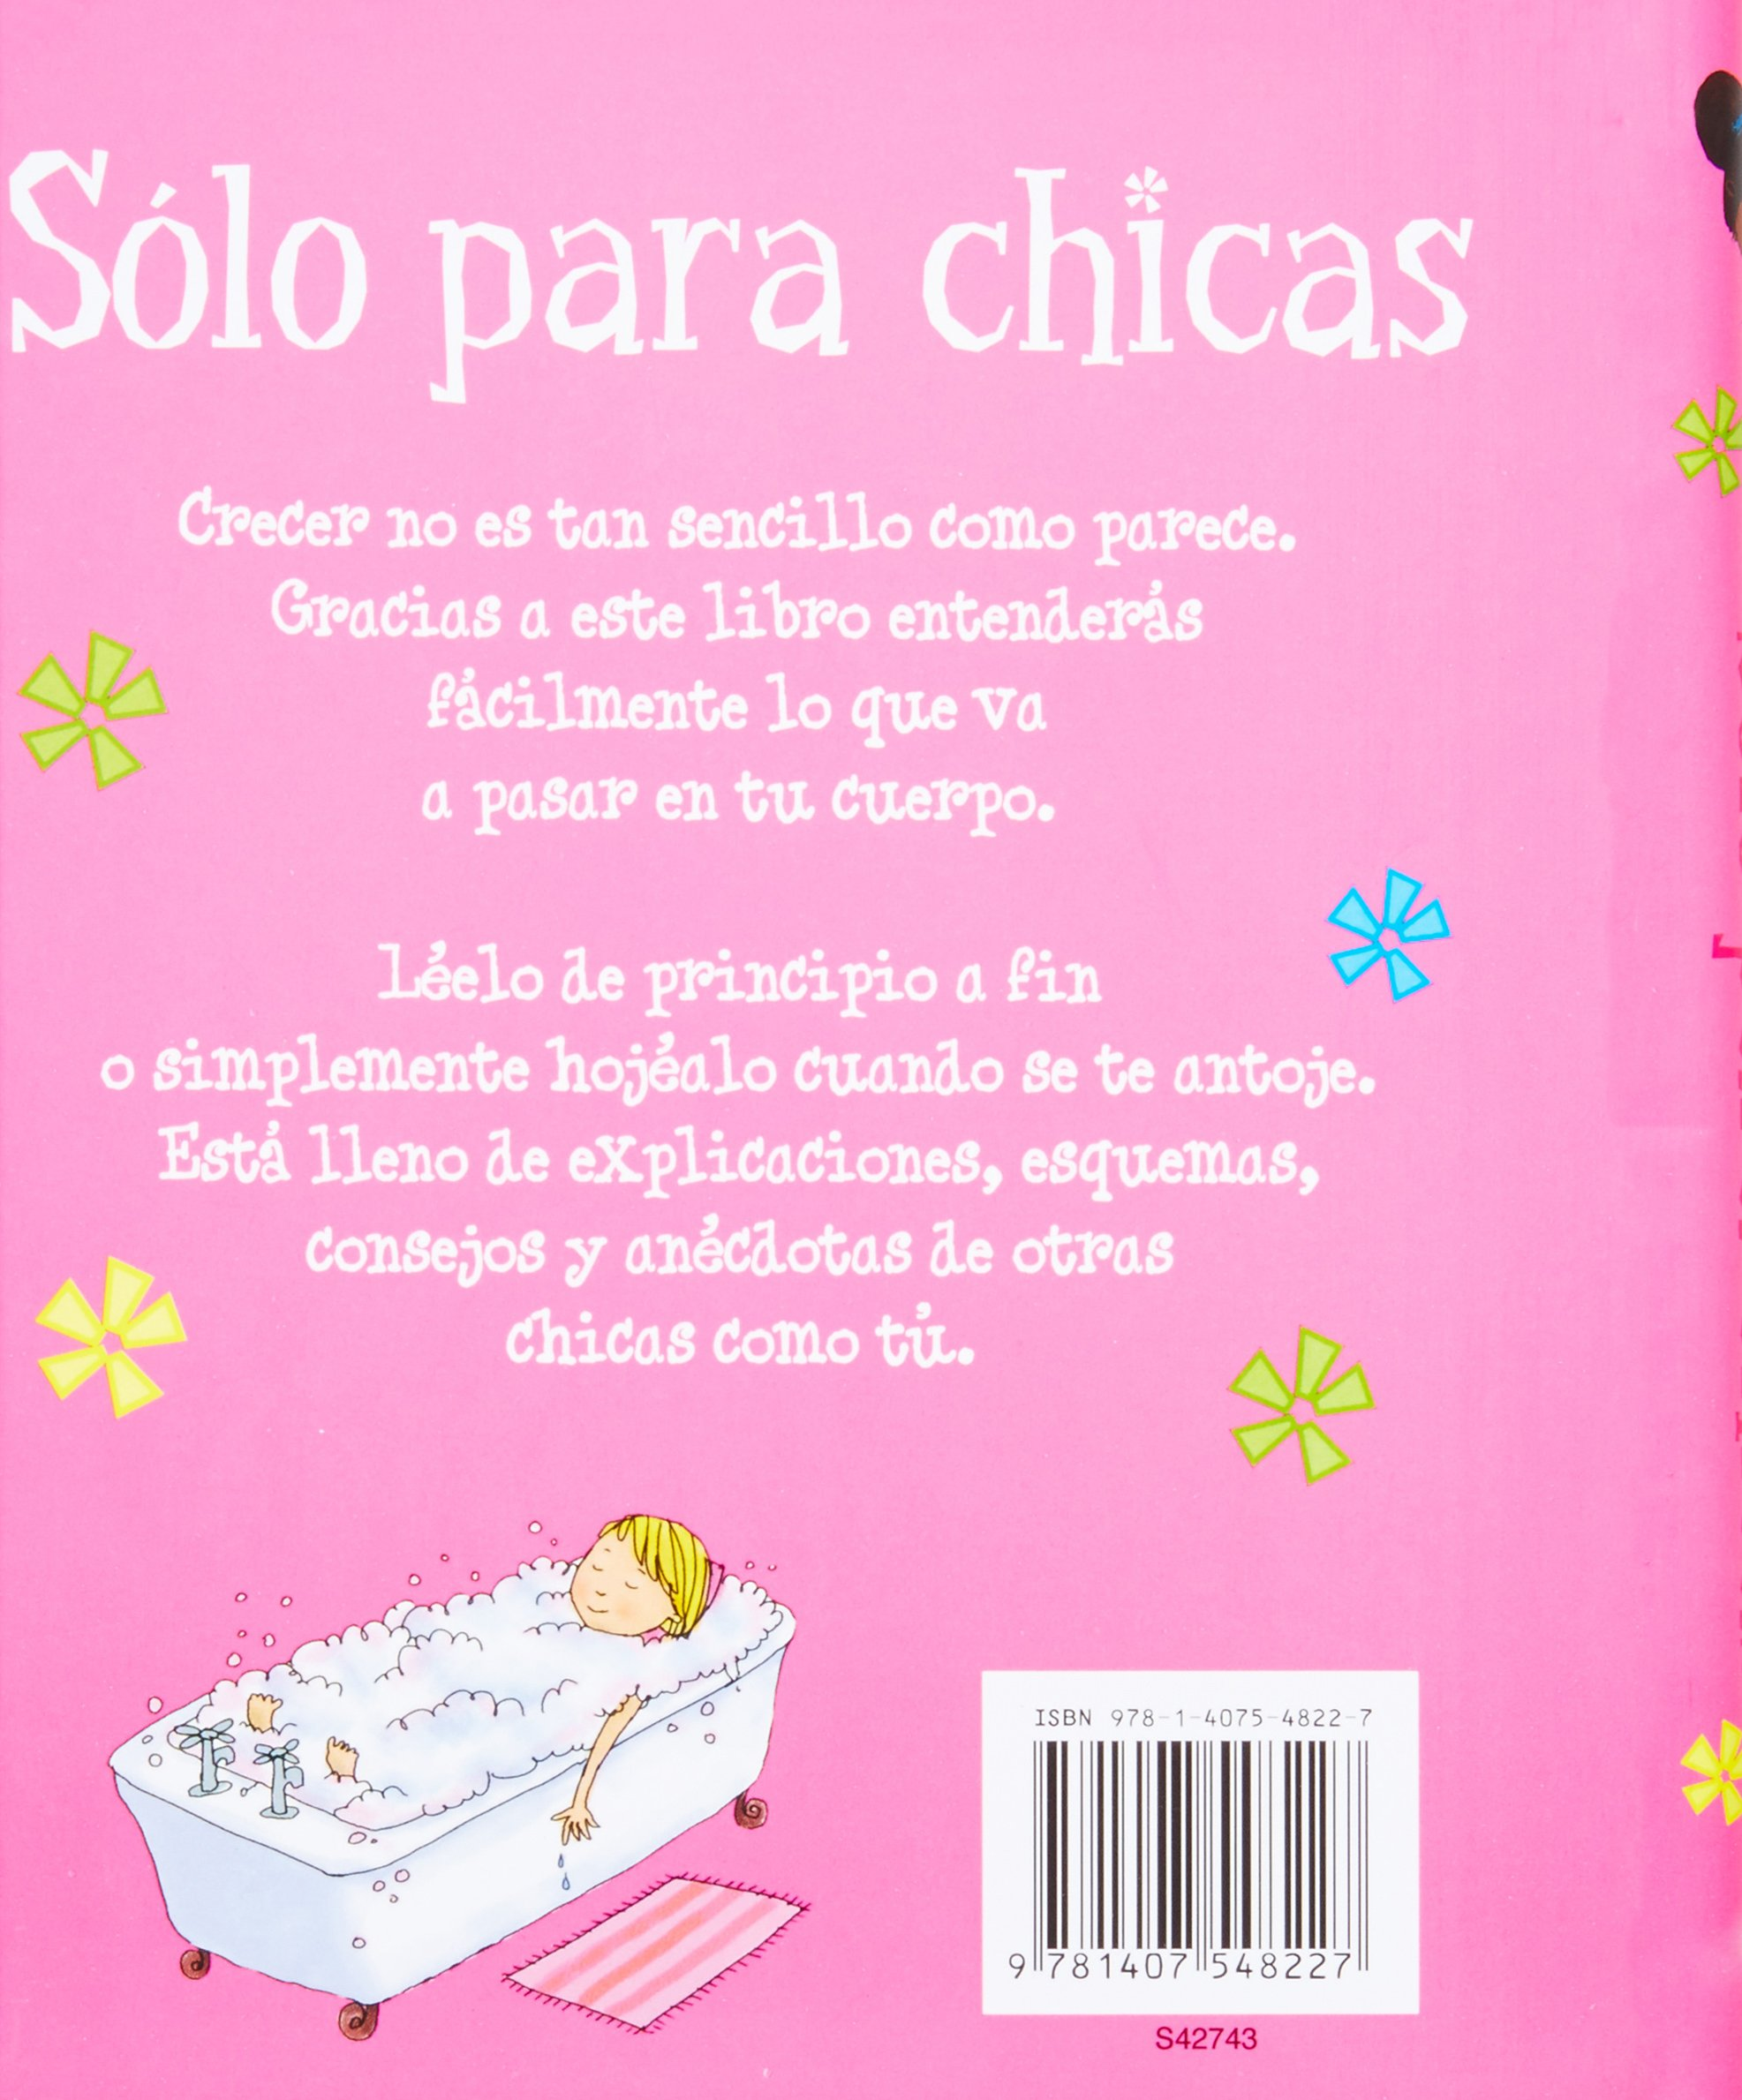 Solo para chicas - ¿que me esta pasando? Amazing Body: Amazon.es: Sarah Delmege, Lee Wildish: Libros